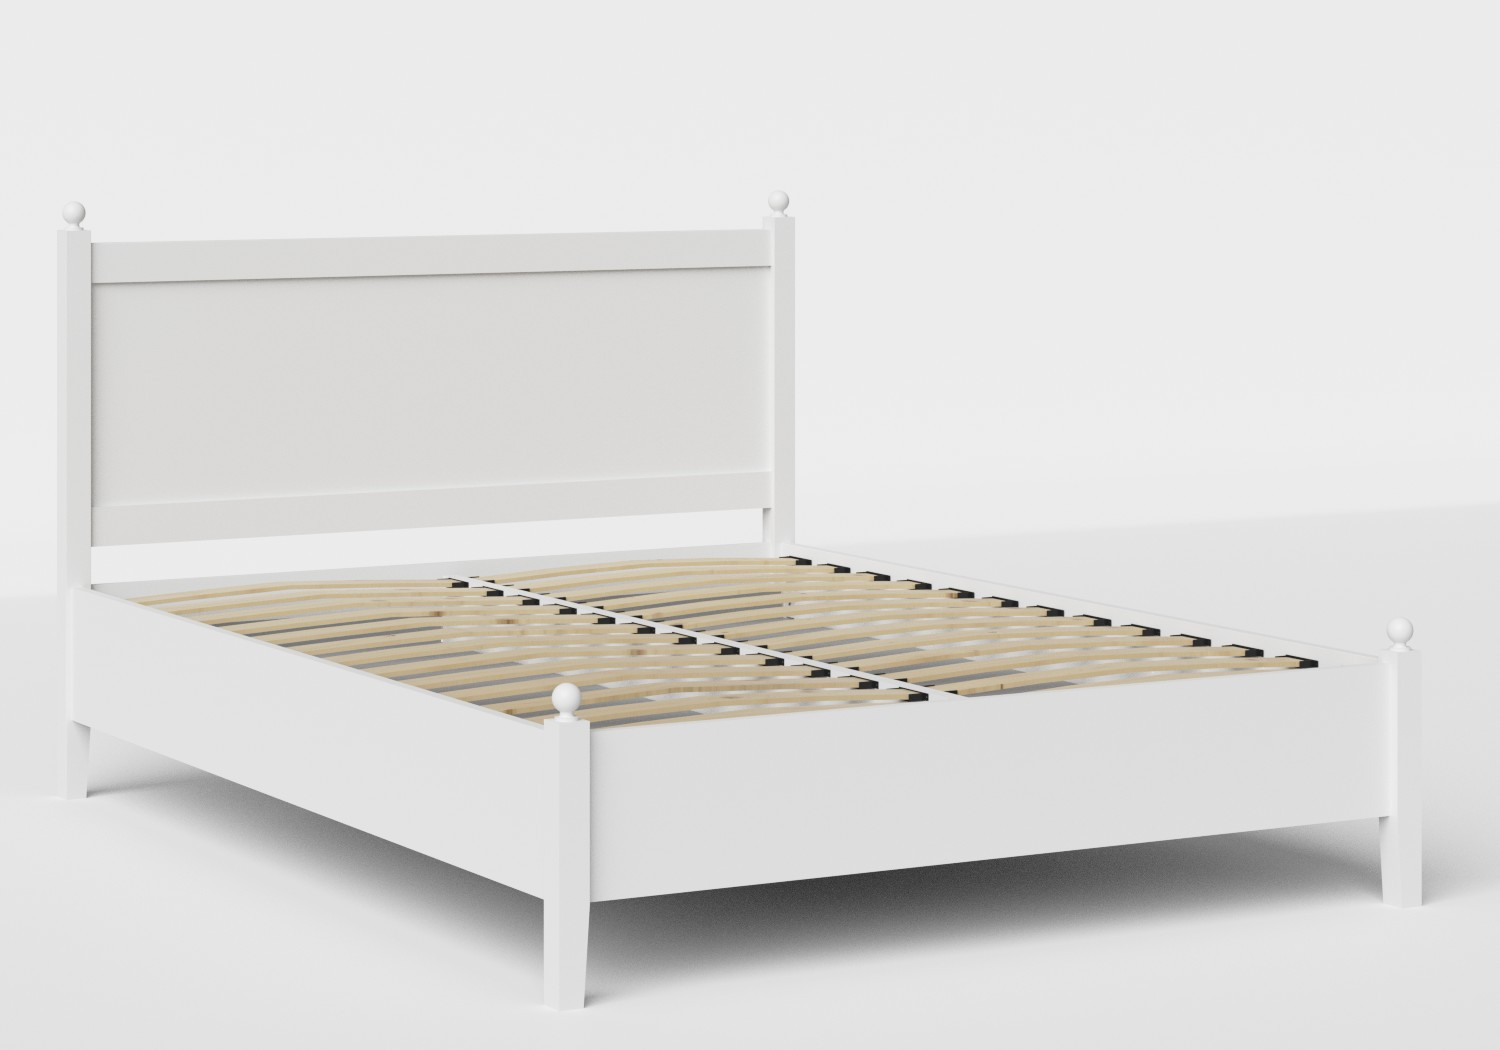 Marbella Low Footend Wood Bed in White shown with slatted frame